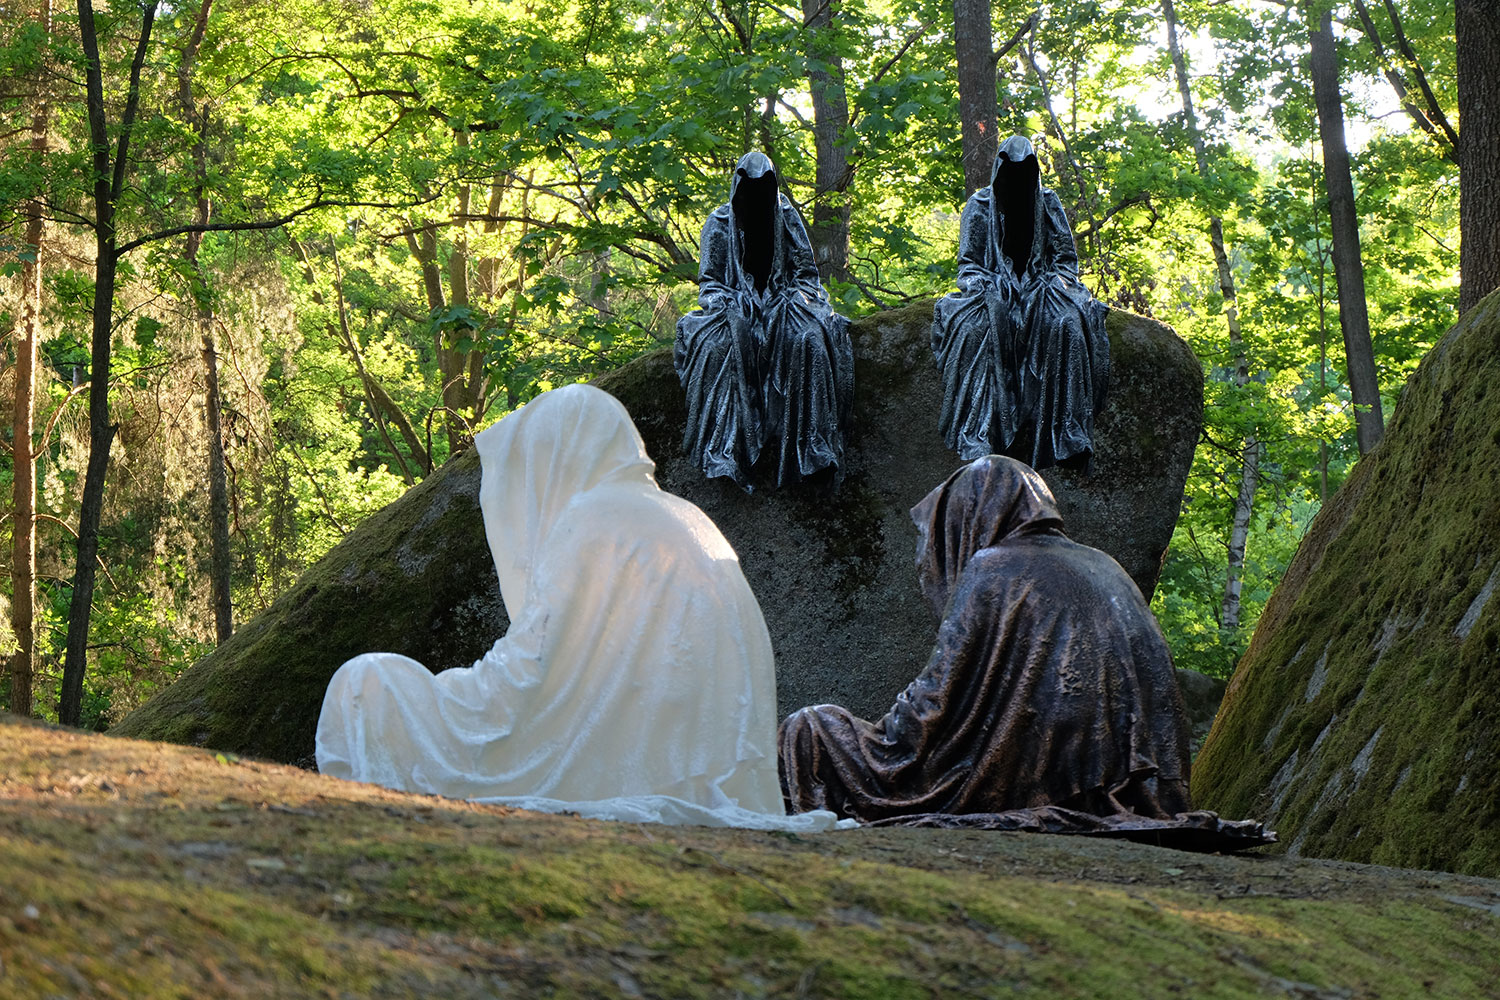 blockheide-gmuend-lower-austria-guardians-of-time-manfred-kili-kielnhofer-contemporary-fine-art-sculpture-arts-arte-2685y